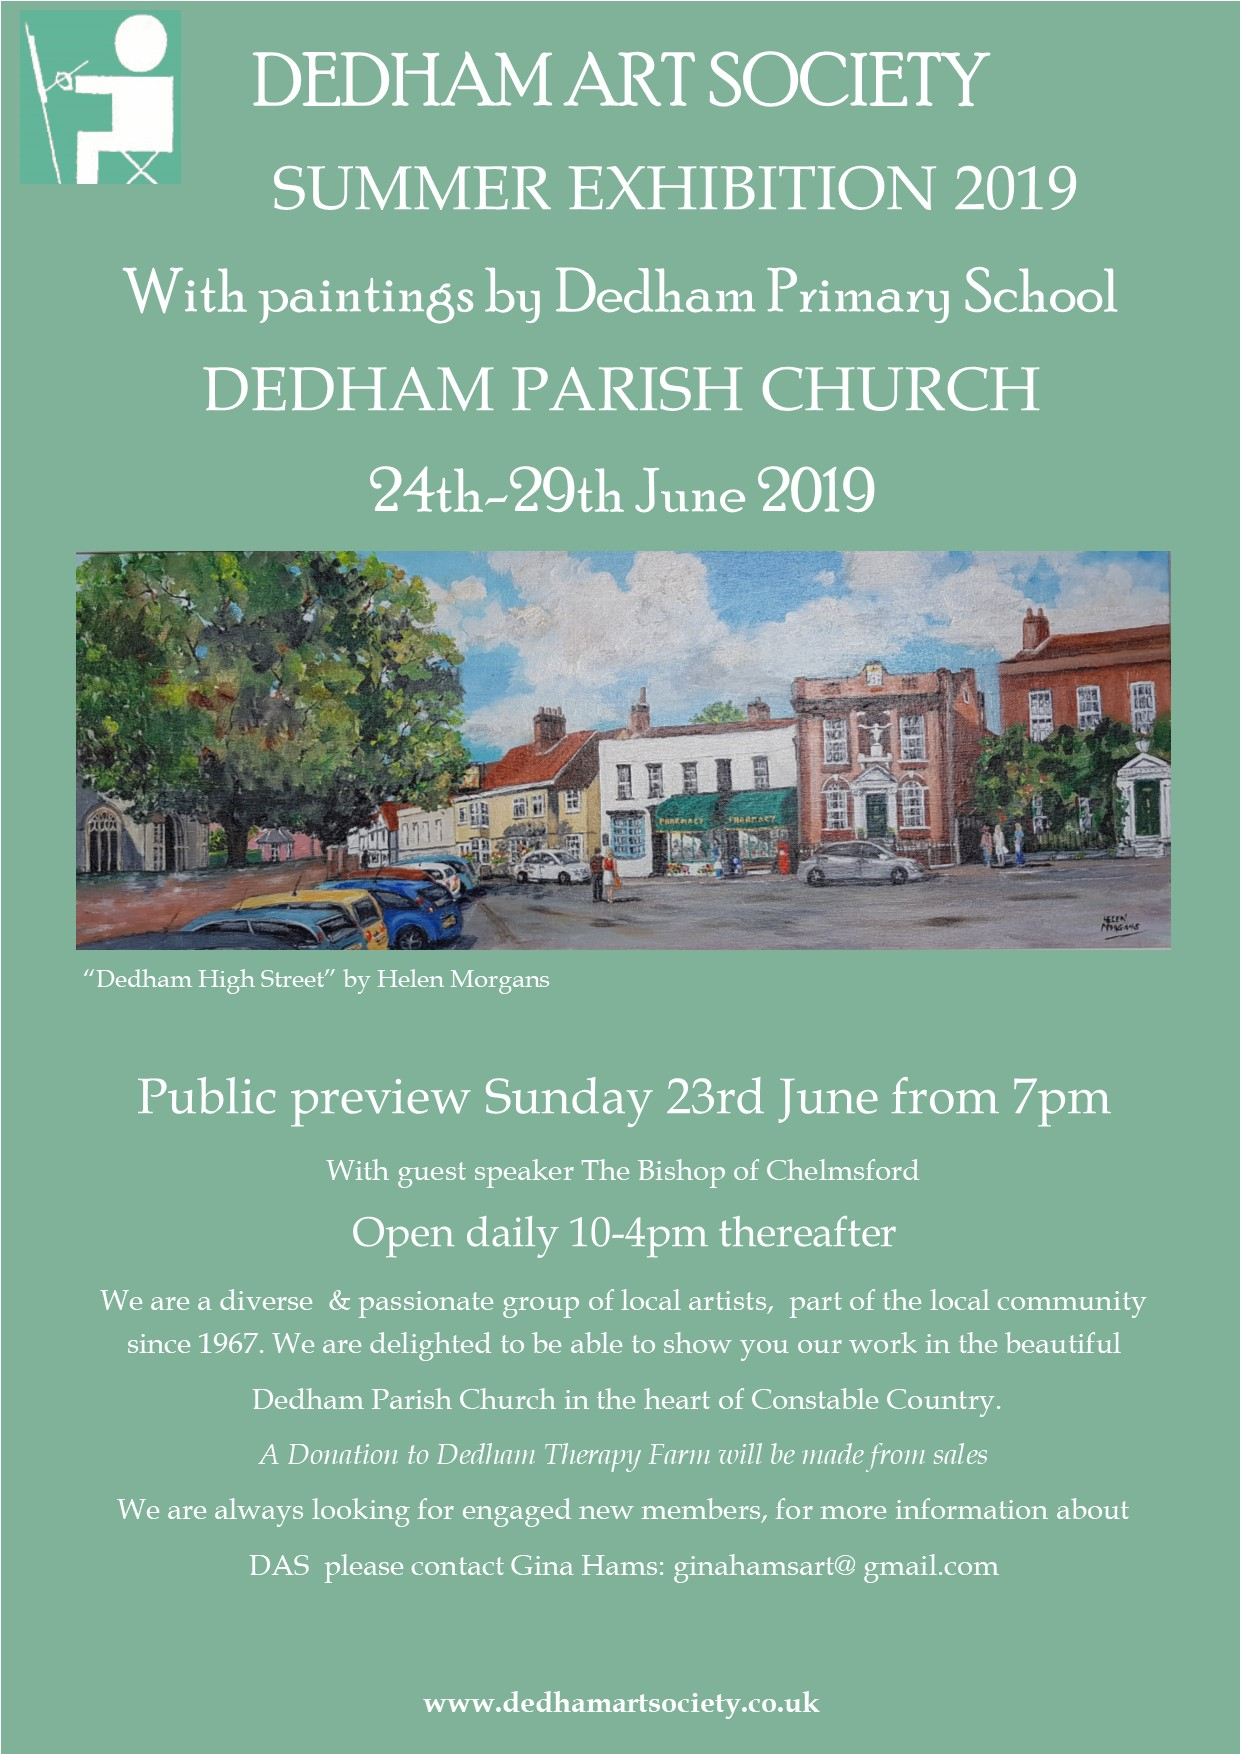 Dedham Art Society Summer Exhibition